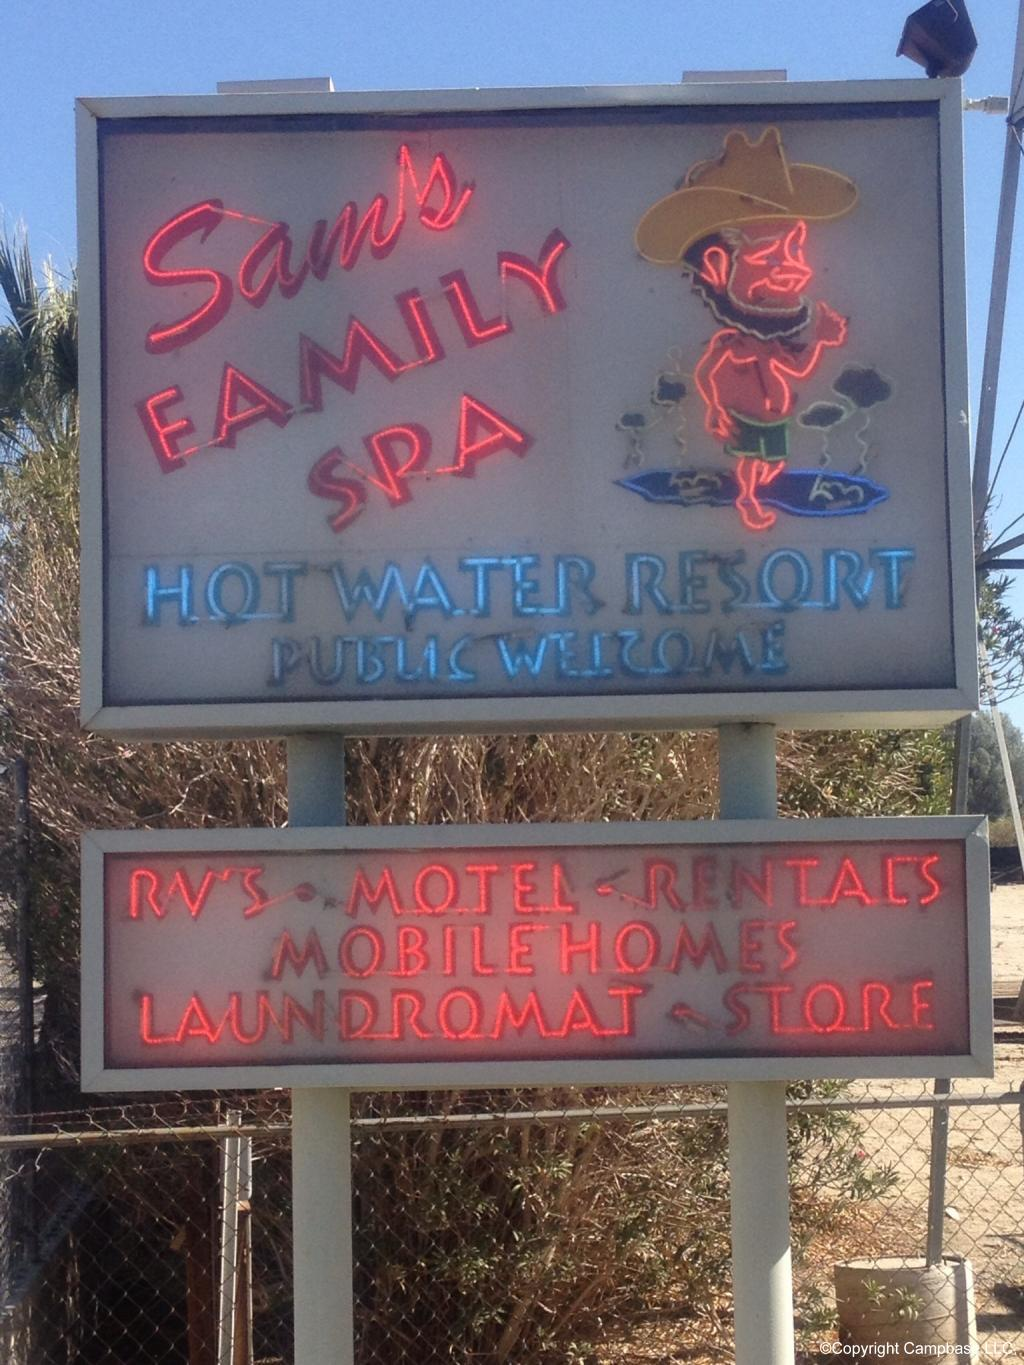 Sams Family Spa Hot Water Resort Desert Hot Springs